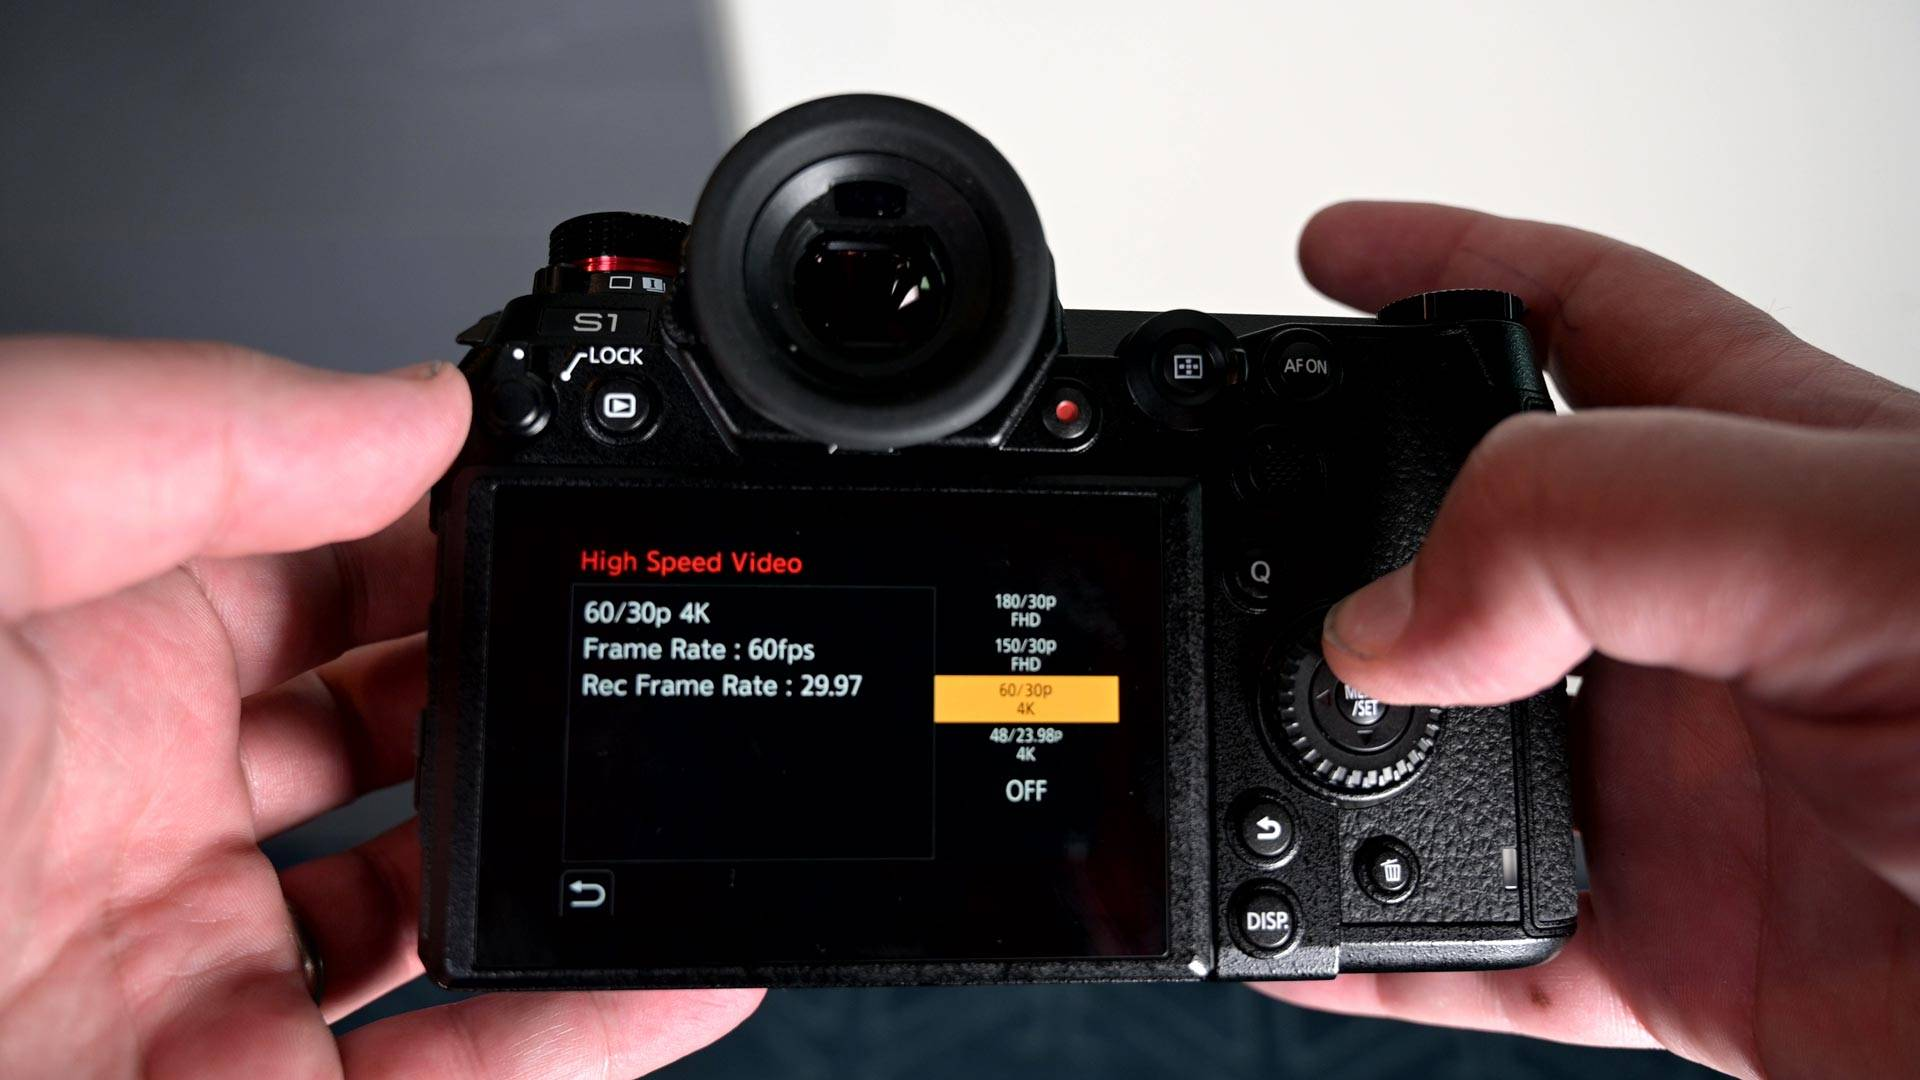 Pansonic Lumix S1 review - accessing the menu